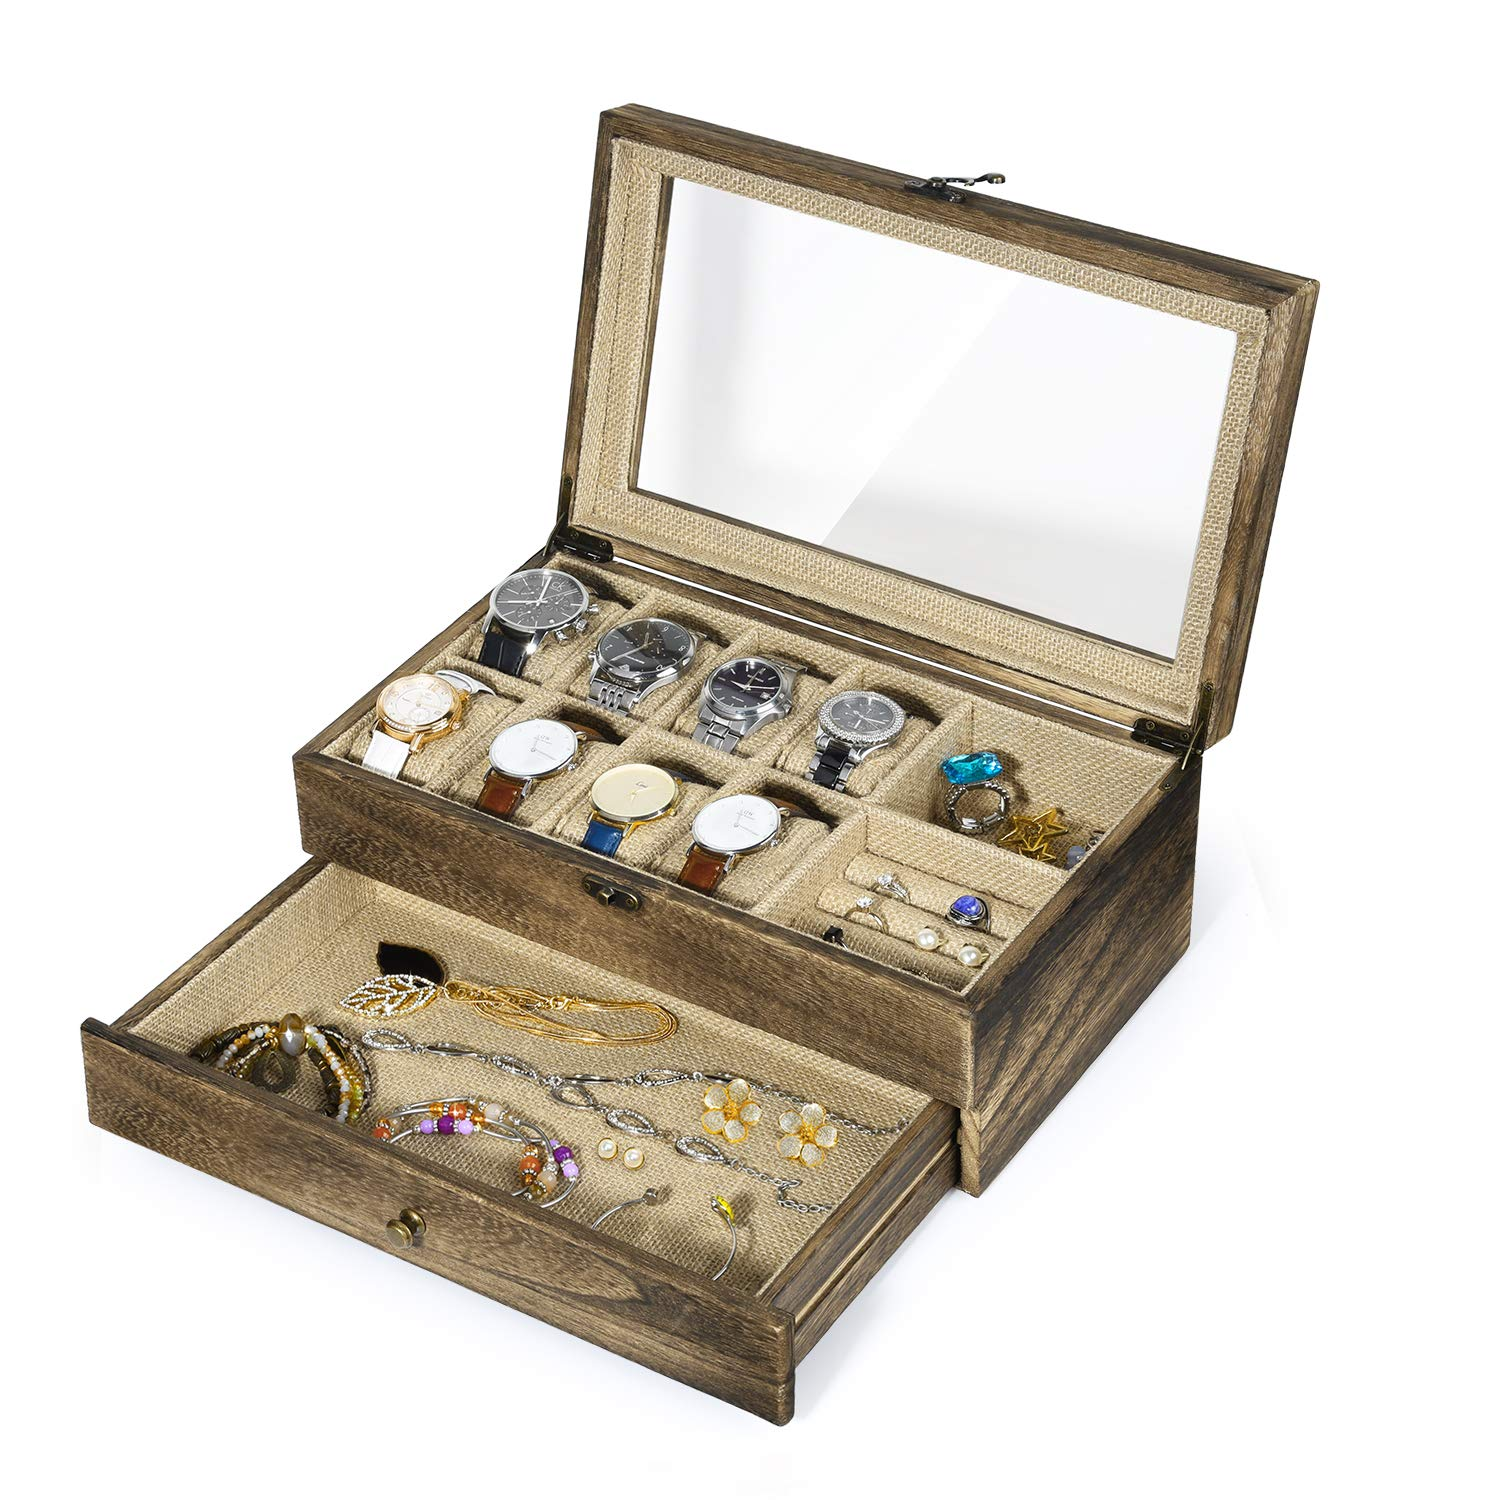 SRIWATANA Watch Box Case, Rustic Solid Wood Watch Organizer, 10 Versatile Slots for Watch, Ring, Bracelet